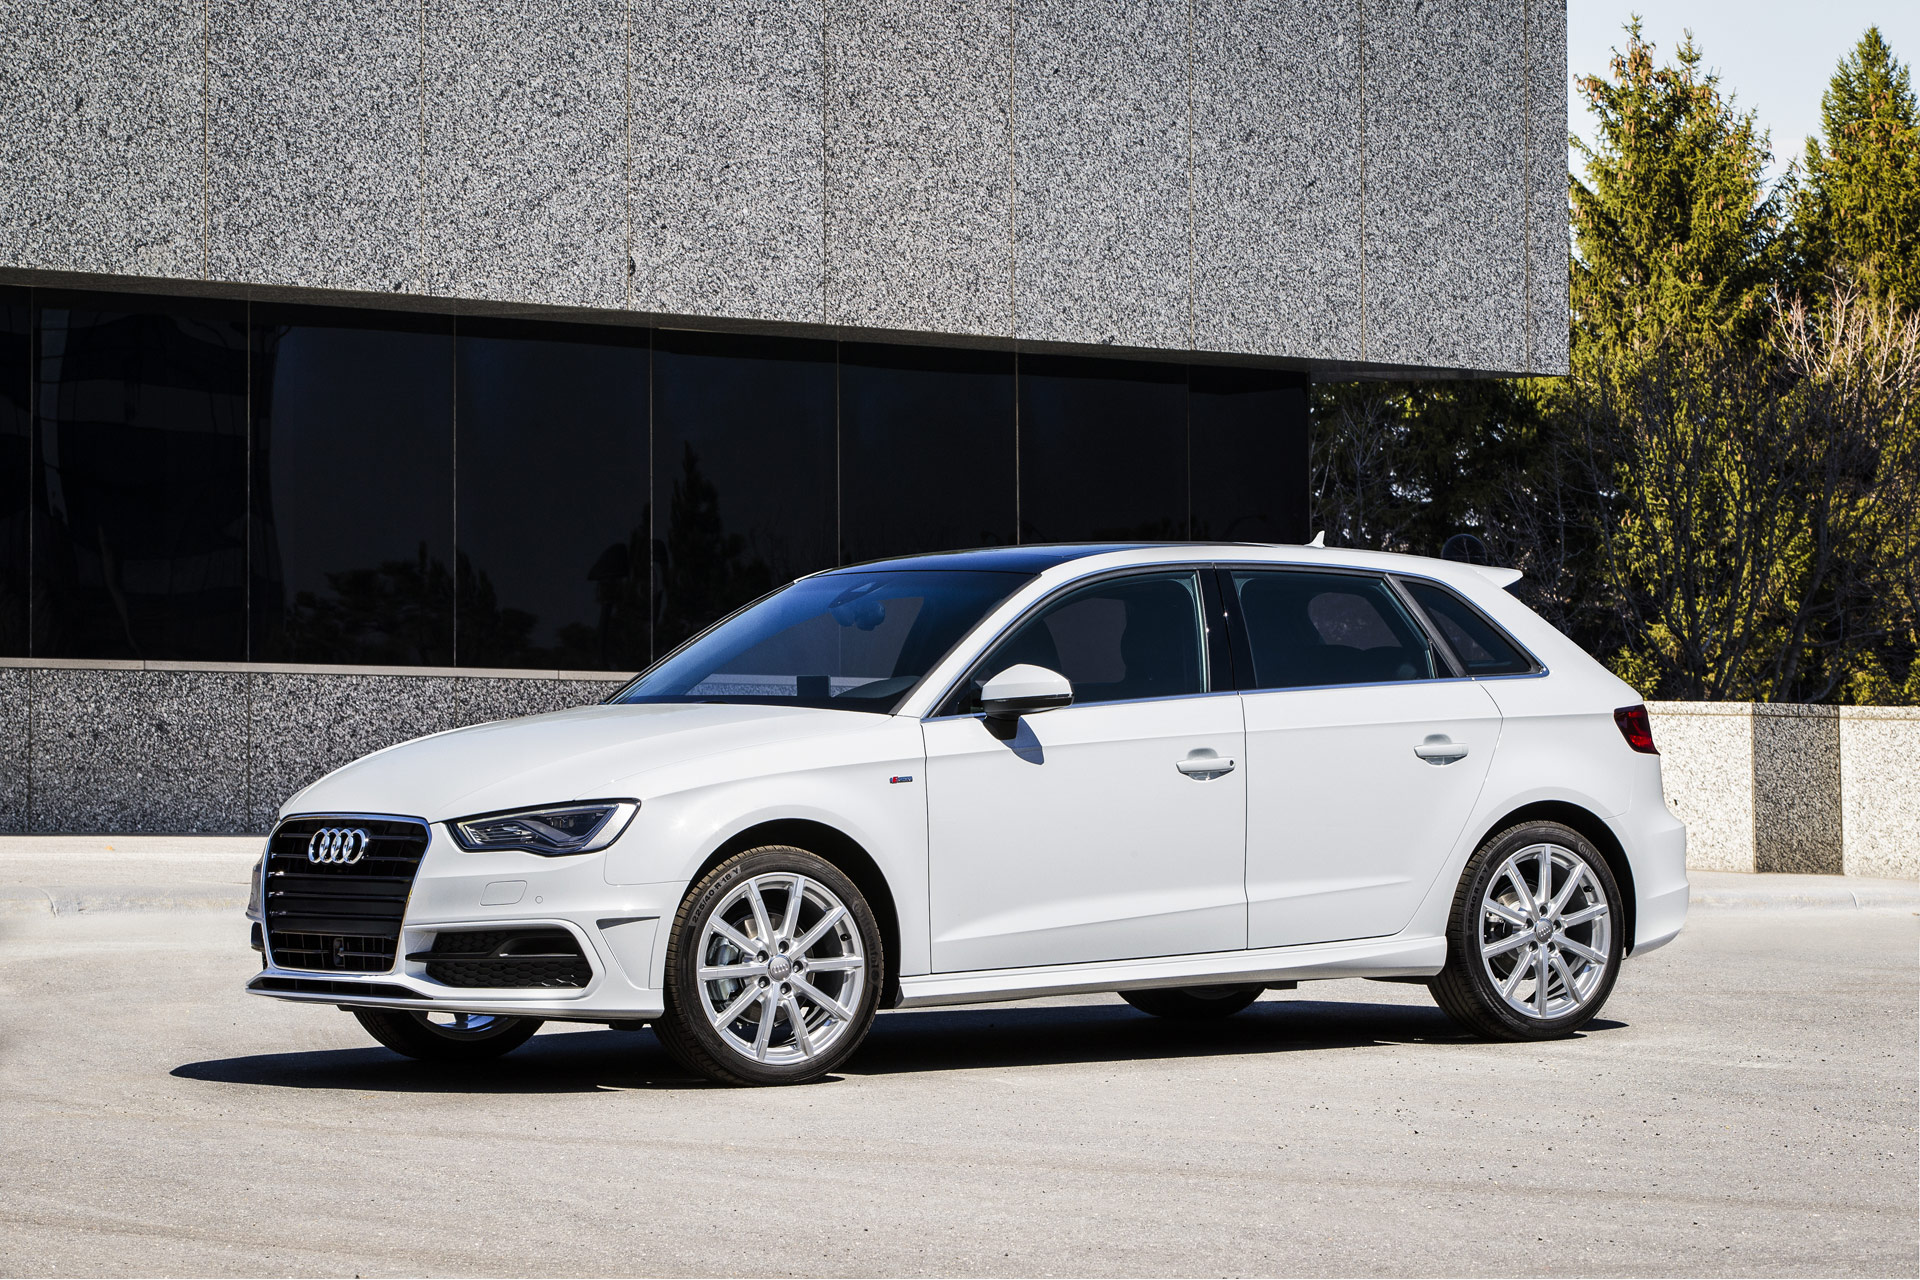 2015 audi a3 tdi sportback news and information. Black Bedroom Furniture Sets. Home Design Ideas